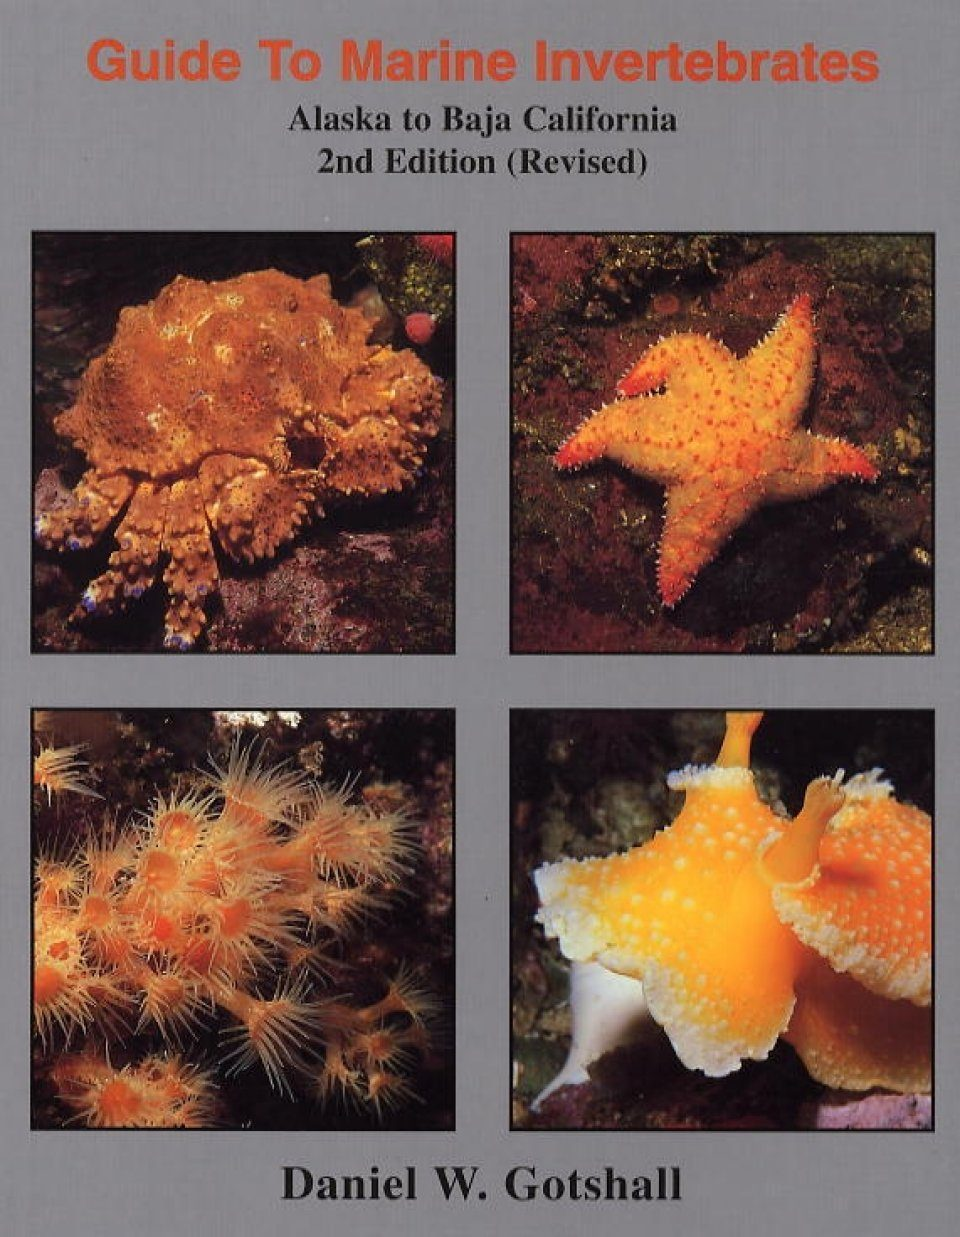 Guide to Marine Invertebrates